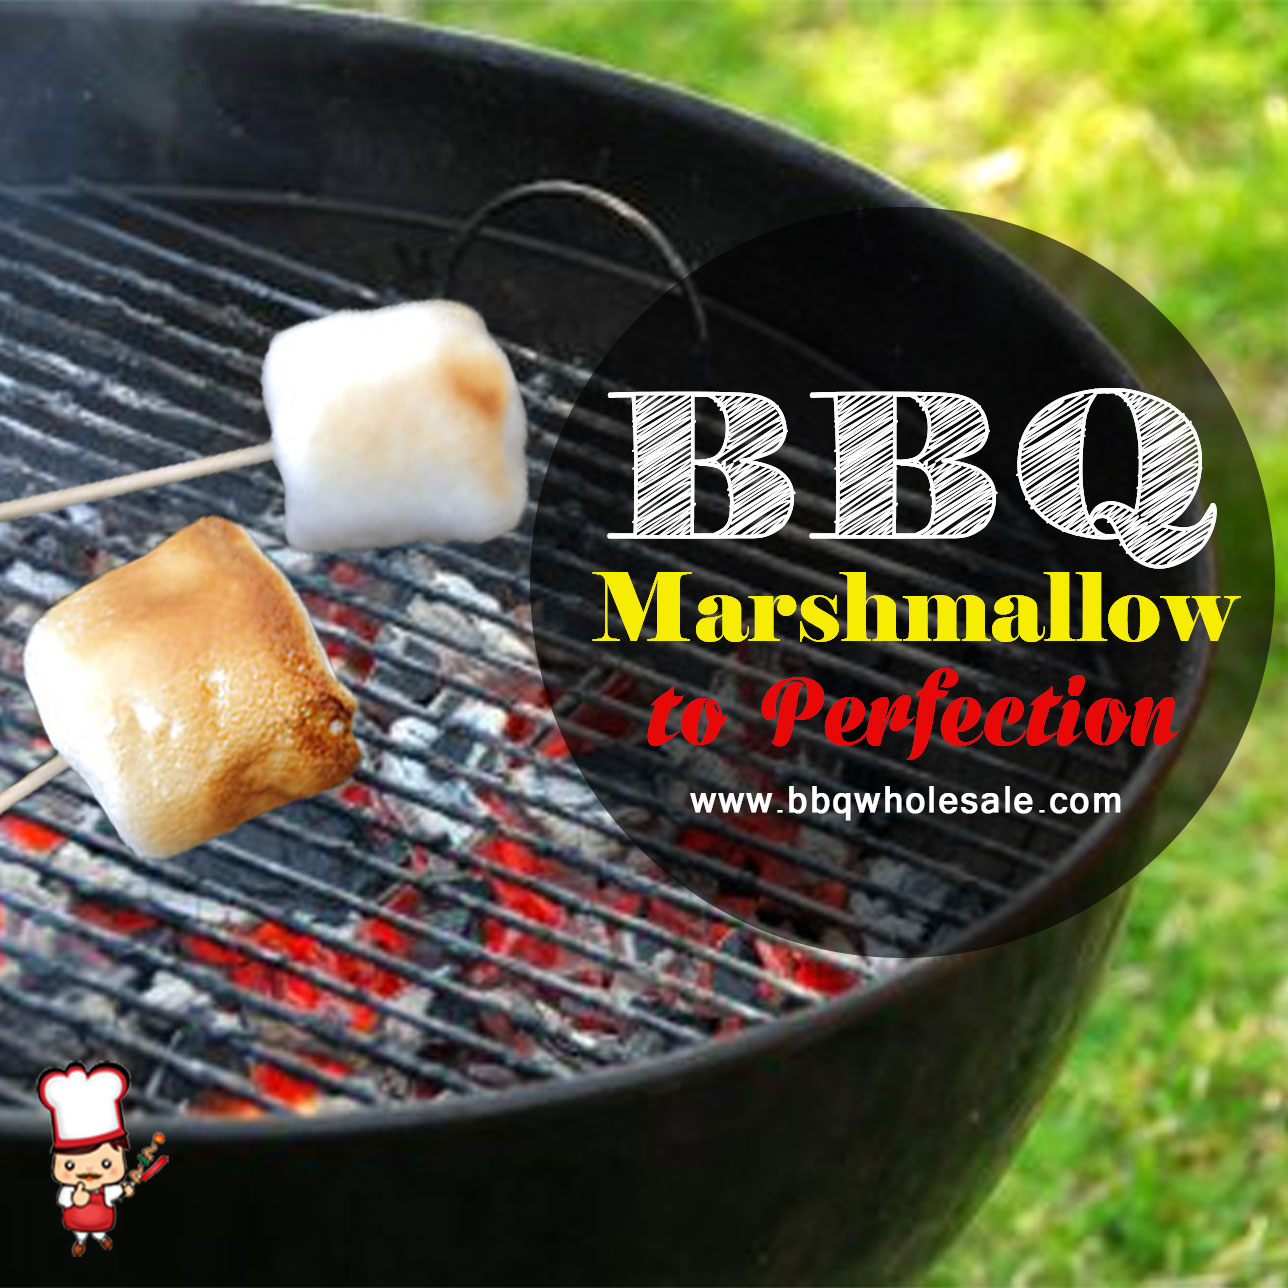 BBQ Marshmallow to Perfection by BBQ Wholesale Centre